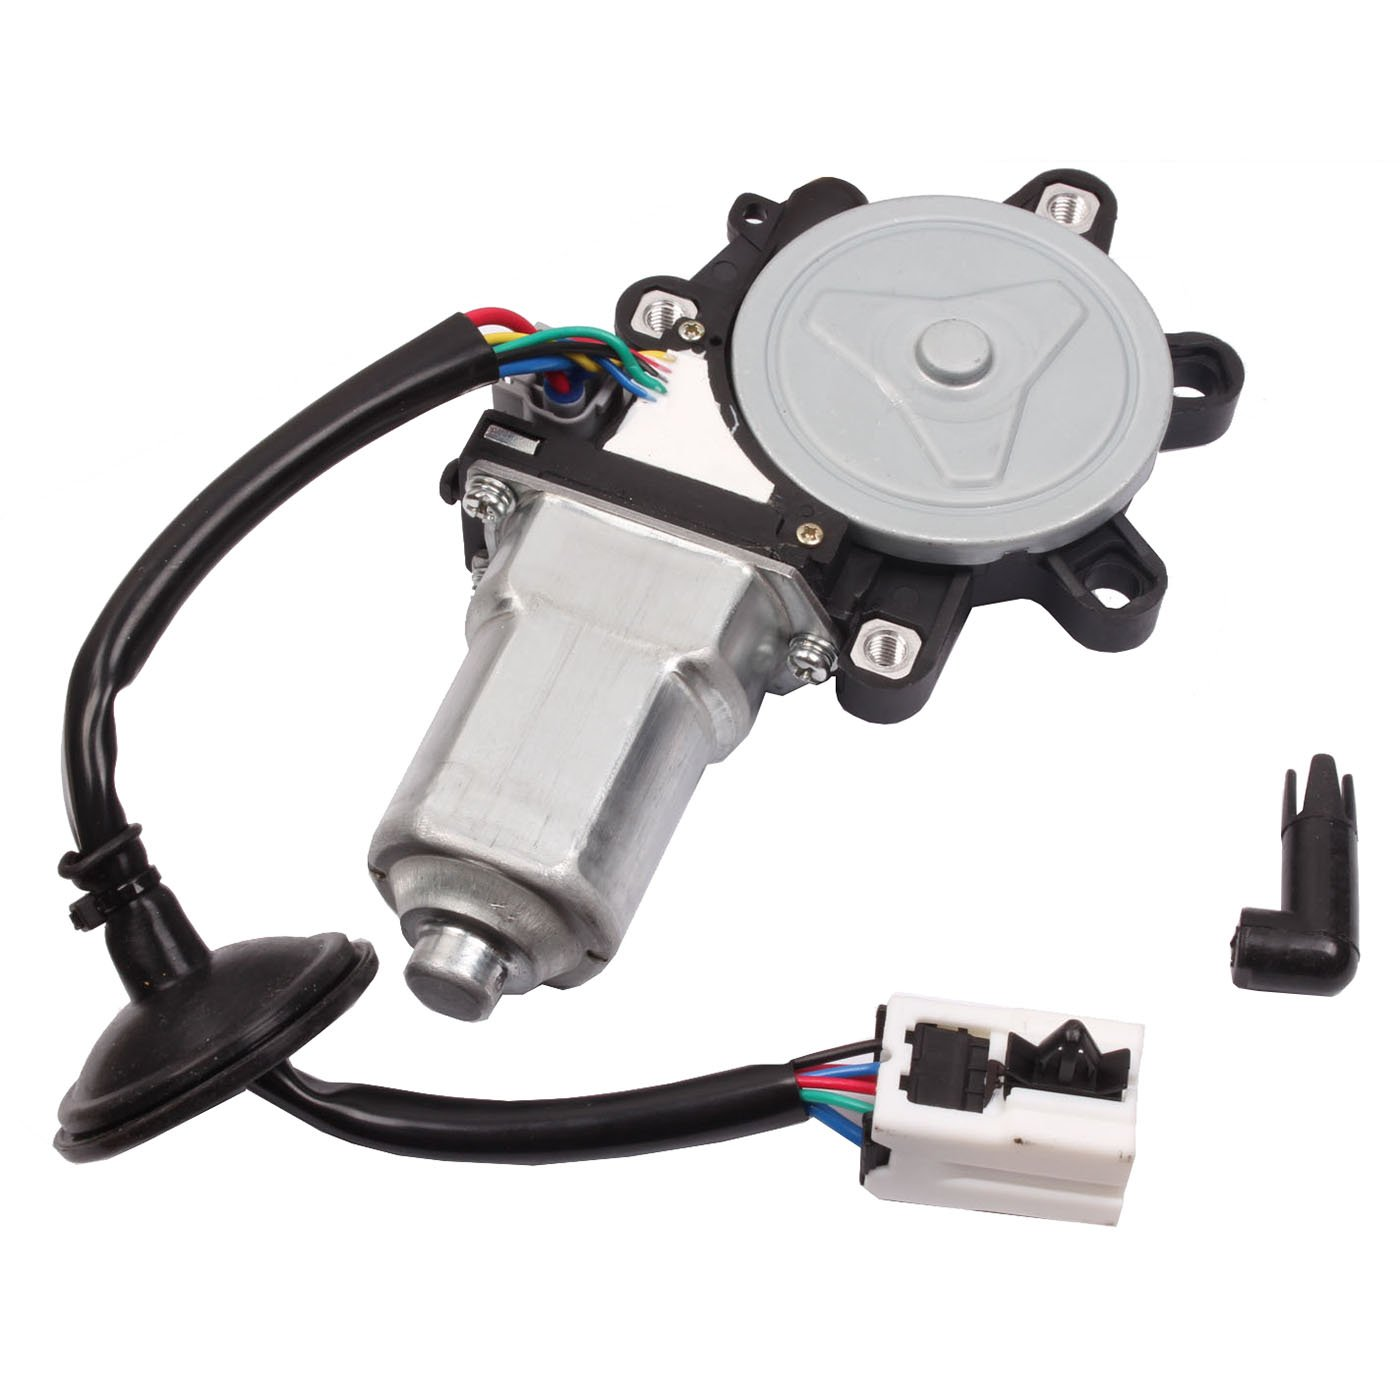 BETOOLL Window Lift Motor Front Left Driver-Side Compatible With 2003 2004 2005 2006 2007 2008 2009 Nissan 350Z / 2003-2007 Infiniti G35 Coupe (Replaces 80731-CD0